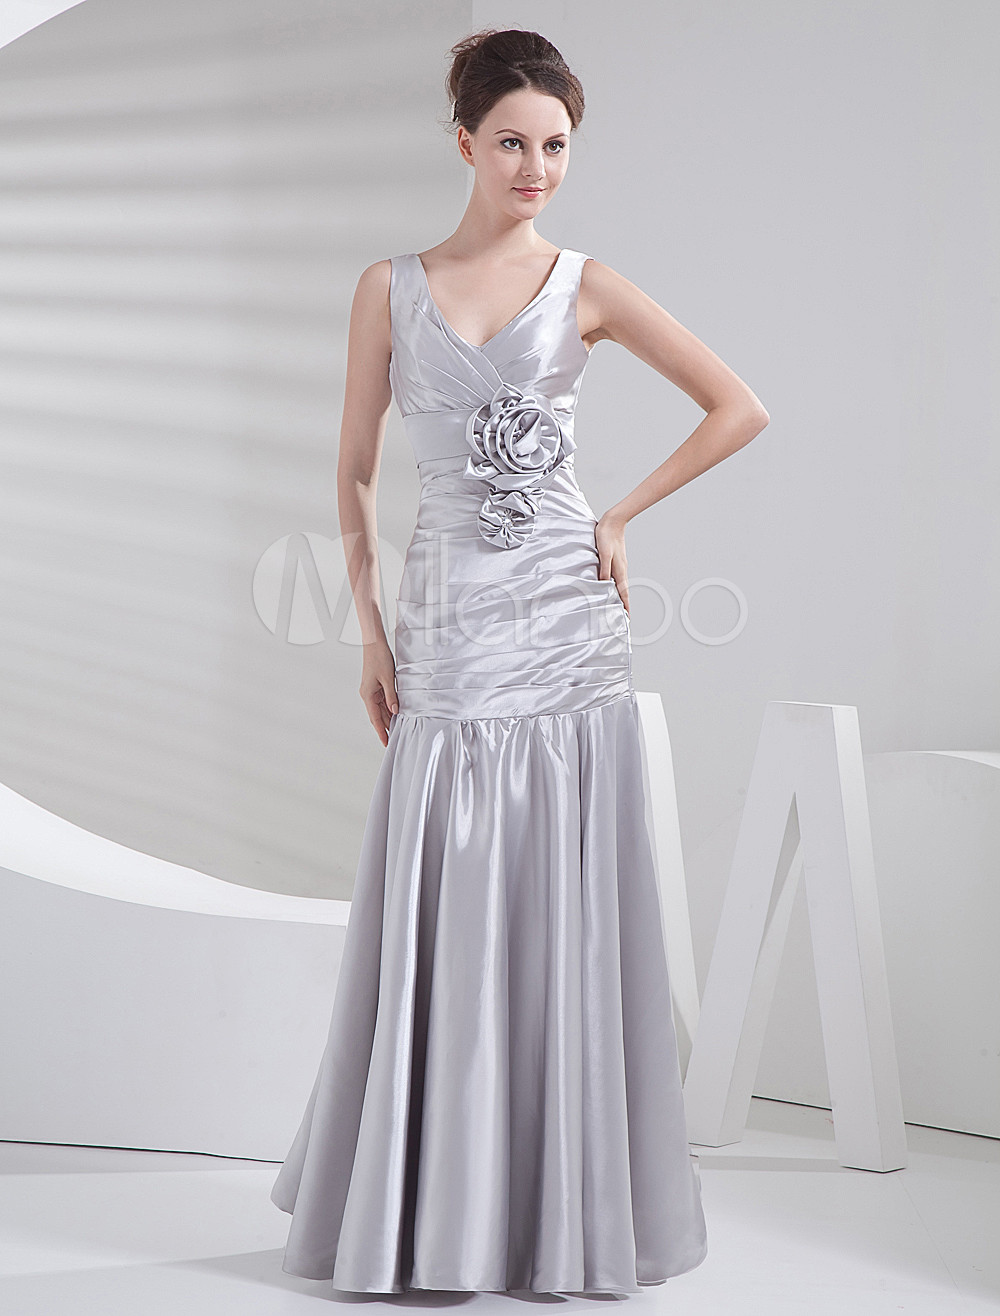 Silver Flower V-Neck Elastic Woven Satin Bridesmaid Dress